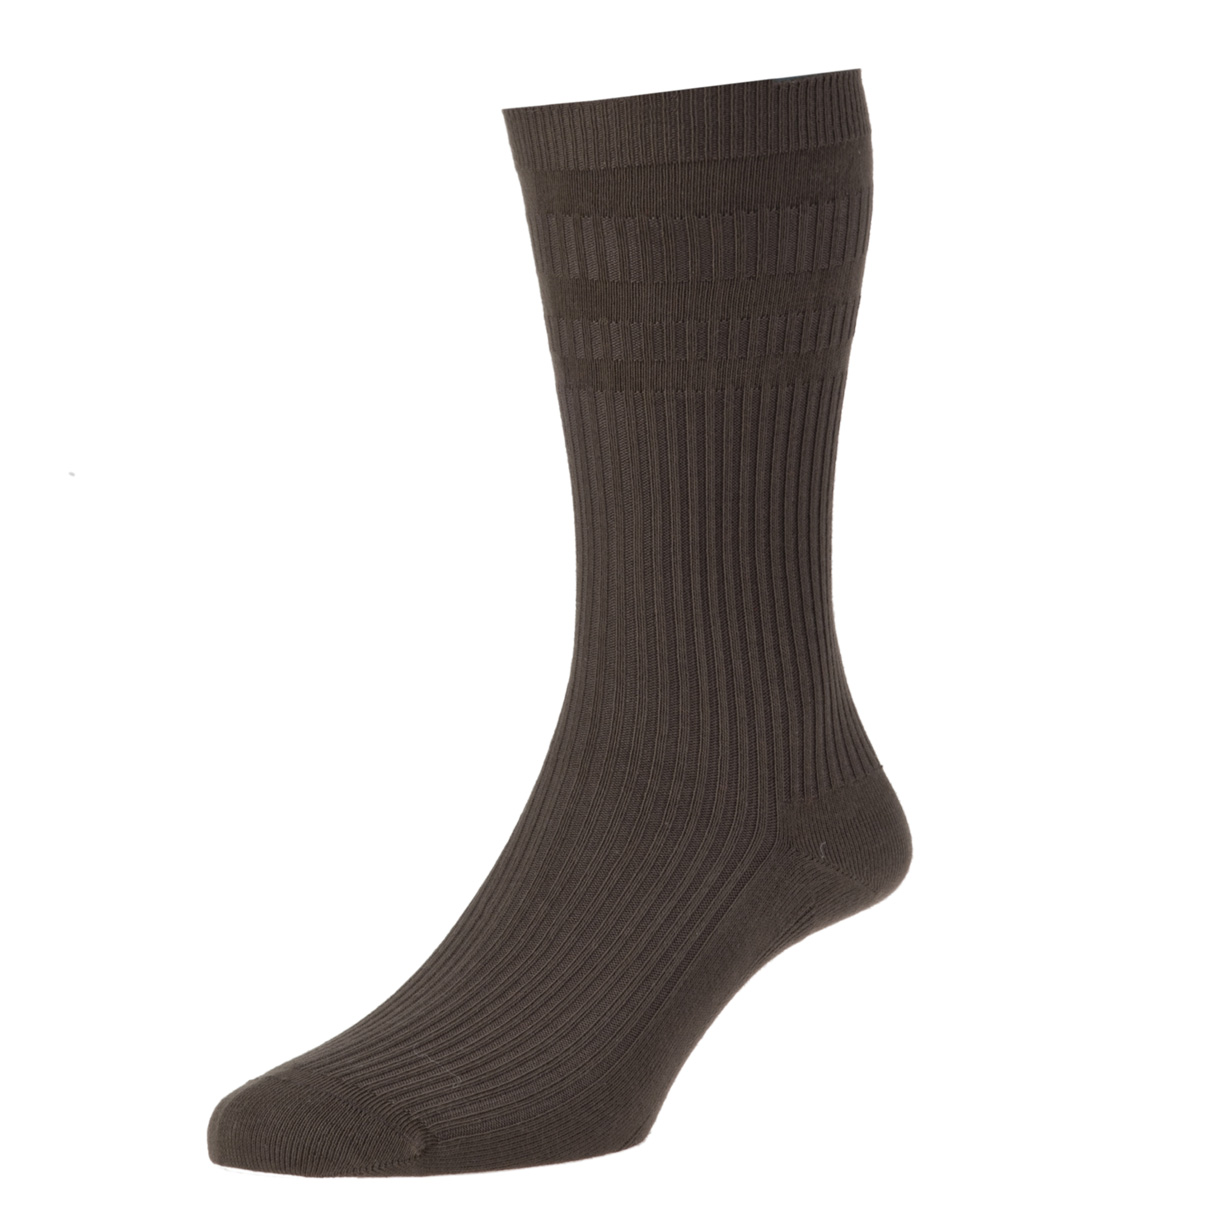 HJ Hall Softop Mens Cotton Socks size 6-11  Dark Brown HJ91